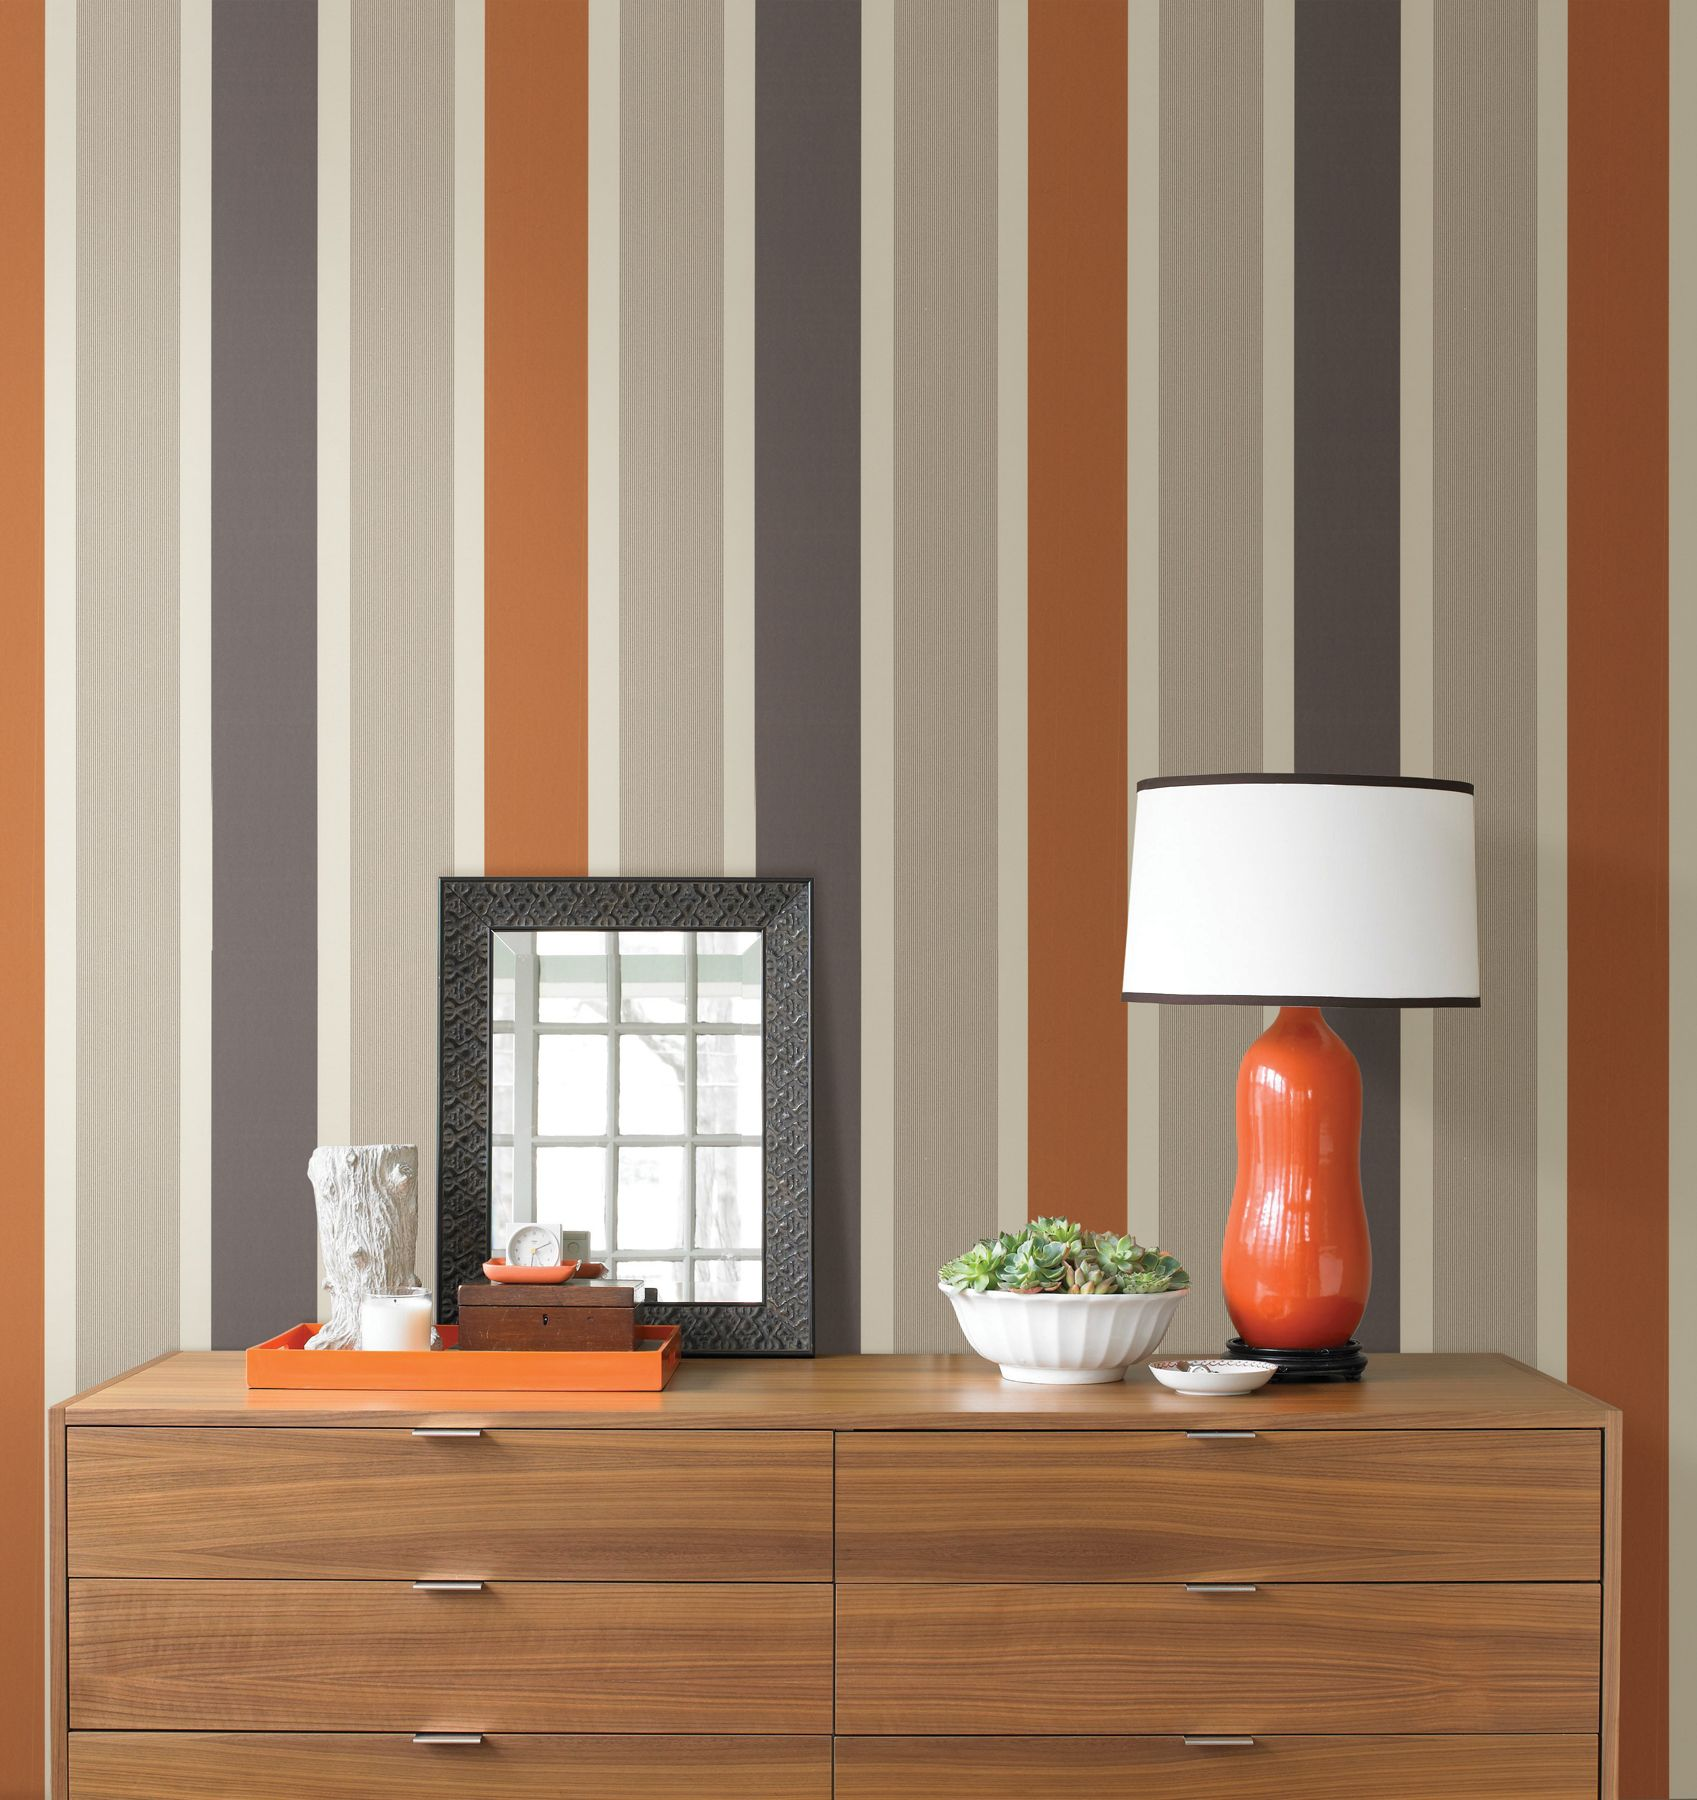 A Striped Wall Feature Wall With A Mod Orange And Grey Wallp